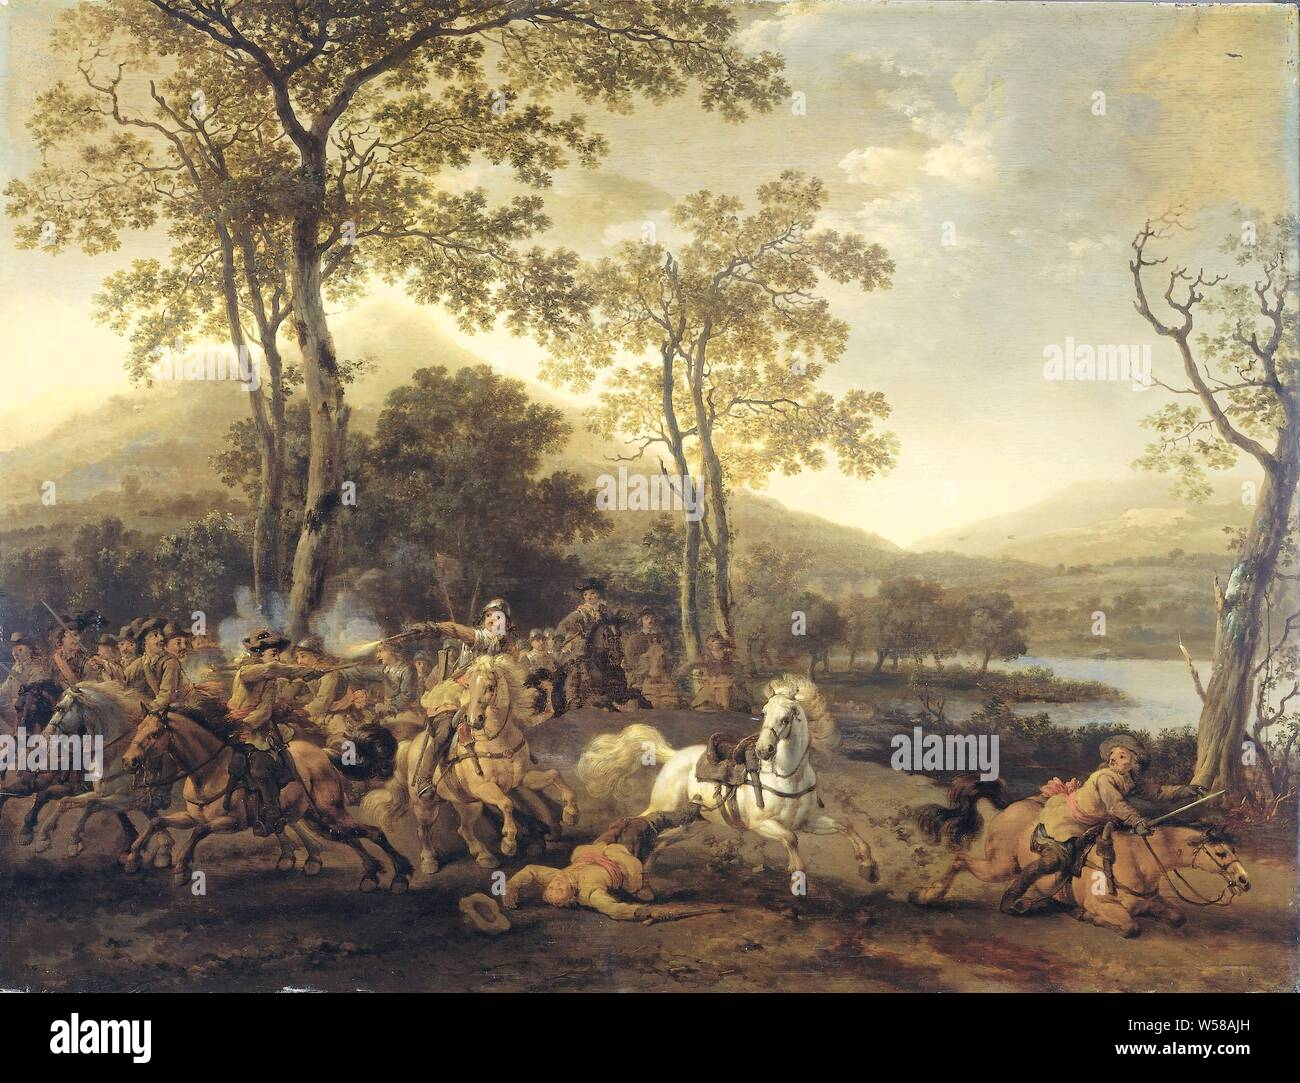 Cavalry Skirmish Landscape With A Cavalry Battle In A Hilly Landscape On The Banks Of A River Two Groups Of Horsemen Are Shooting Each Other Abraham Van Calraet 1660 1722 Panel